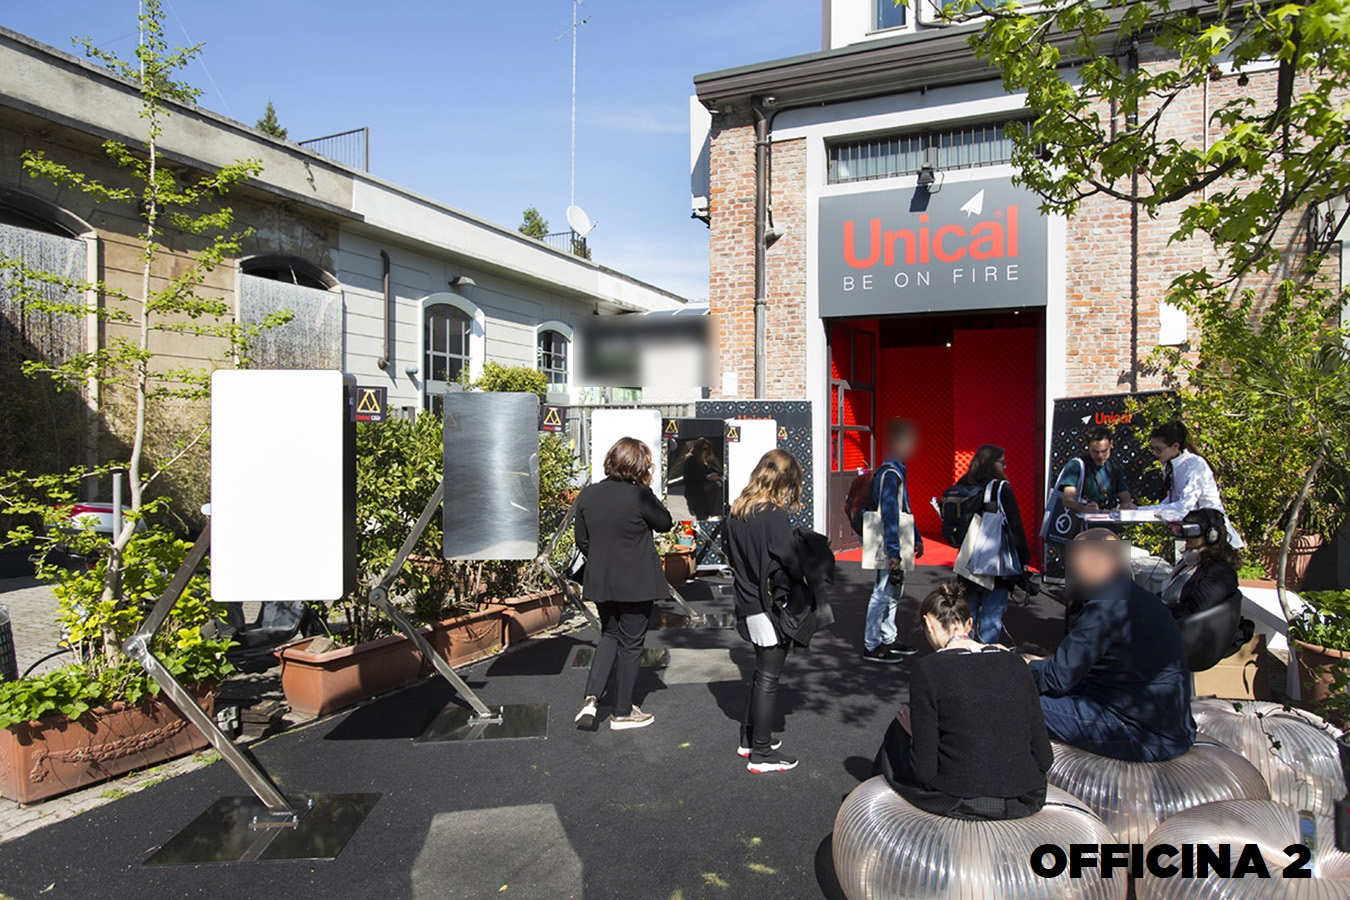 Opificio 31-Officine Cova - Officina, Open space, Showroom, Spazio outdoor di 320mq in Via Tortona 31 | location disallestita 10